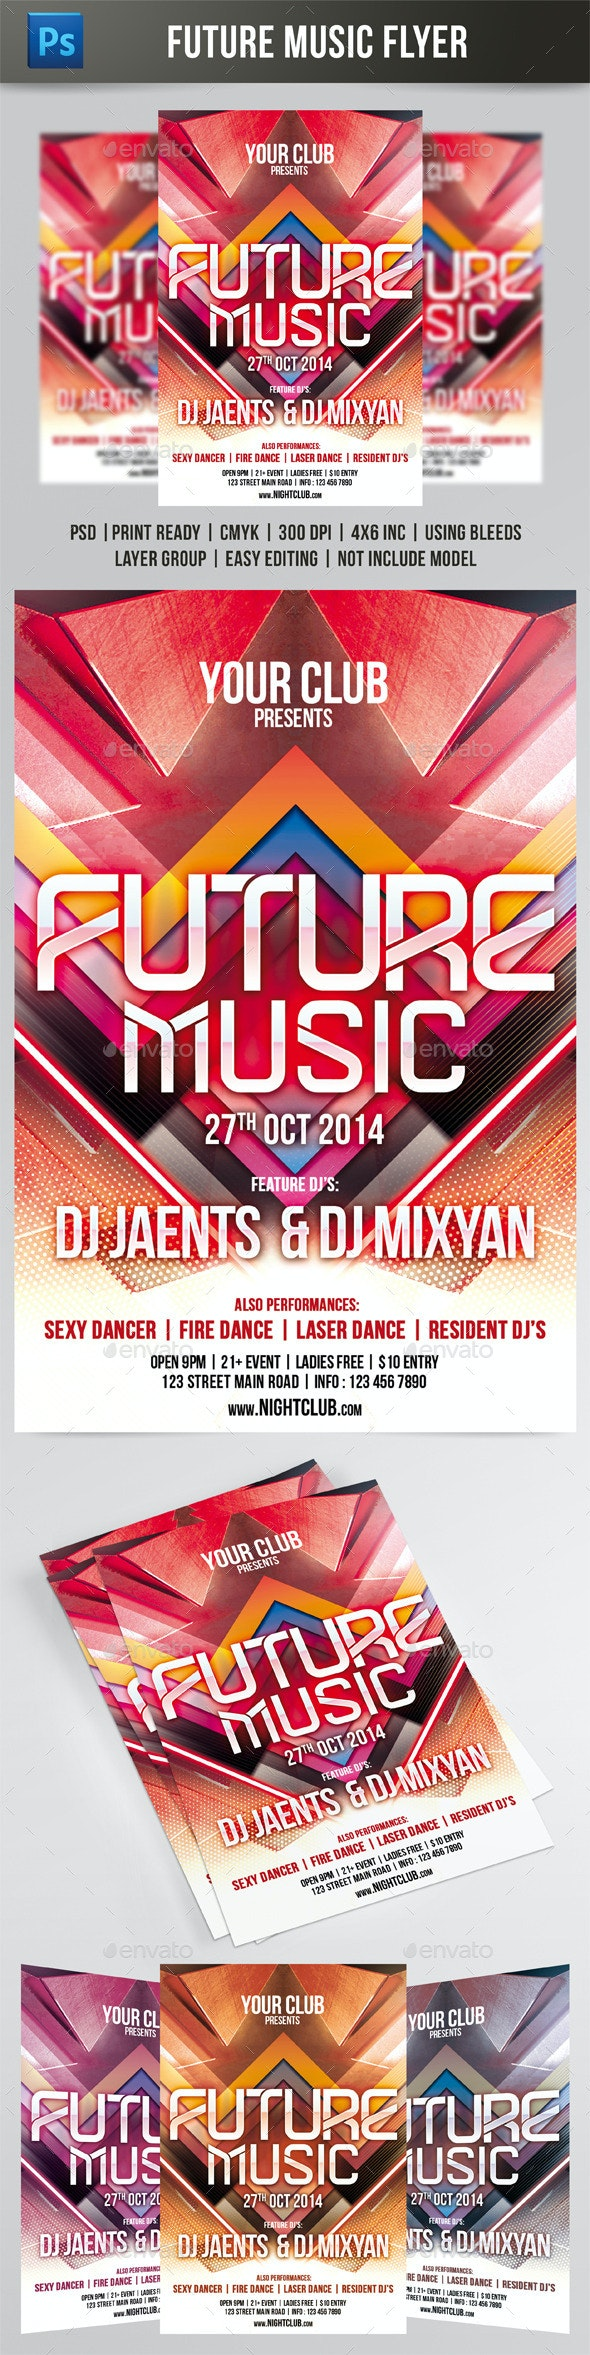 Future Music Flyer - Events Flyers